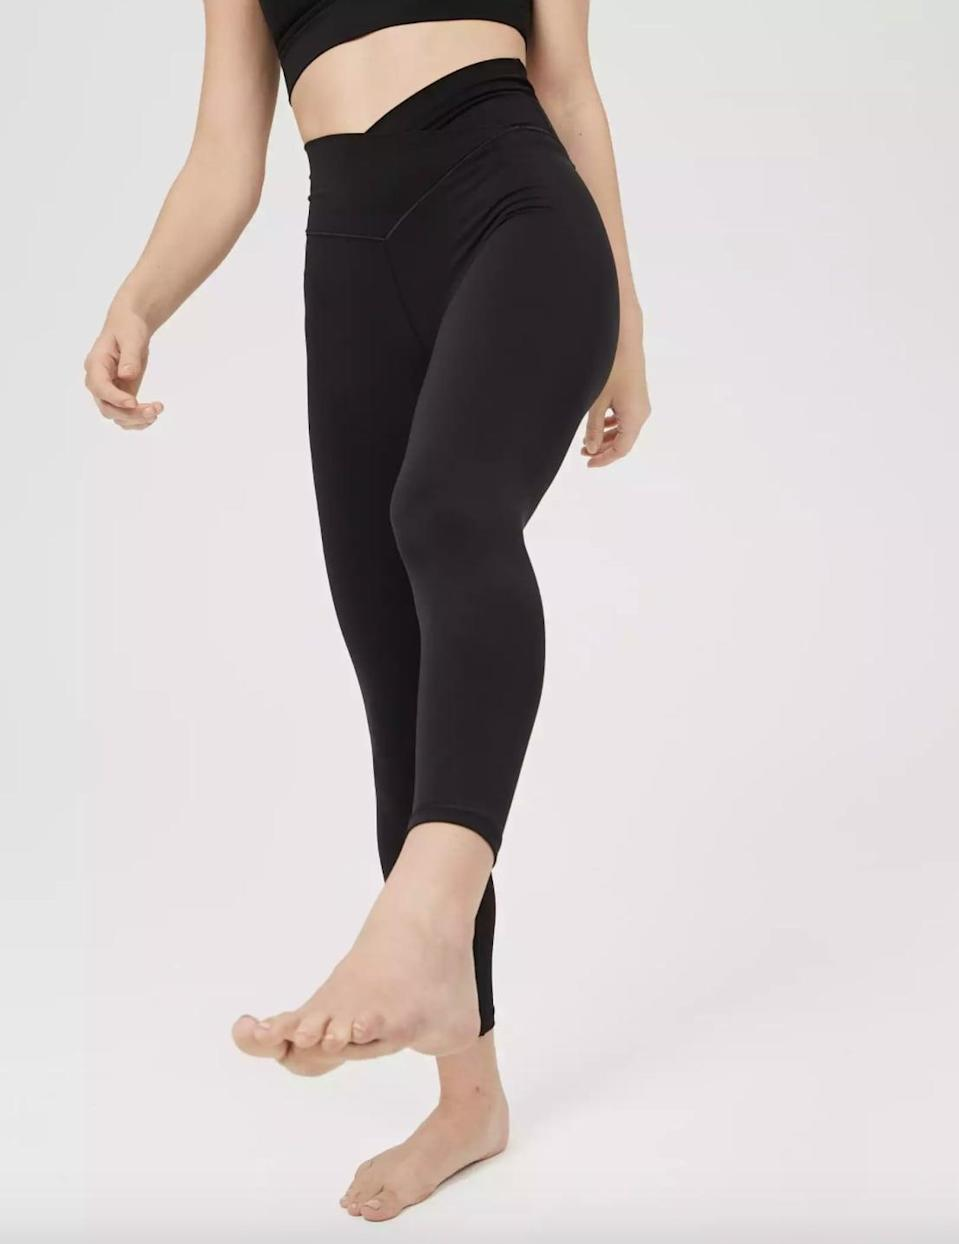 """<p>""""These <span>OFFLINE Real Me High Waisted Crossover Leggings</span> ($45) are the ones from Aerie that <a href=""""https://www.popsugar.com/fitness/best-crossover-leggings-48101427"""" class=""""link rapid-noclick-resp"""" rel=""""nofollow noopener"""" target=""""_blank"""" data-ylk=""""slk:everyone has been talking about on social media"""">everyone has been talking about on social media</a>, especially on TikTok. They live up to the hype for sure: they're super comfortable, flattering, buttery-smooth, and great for workouts."""" - Sam Brodsky, assistant editor, Fitness</p>"""